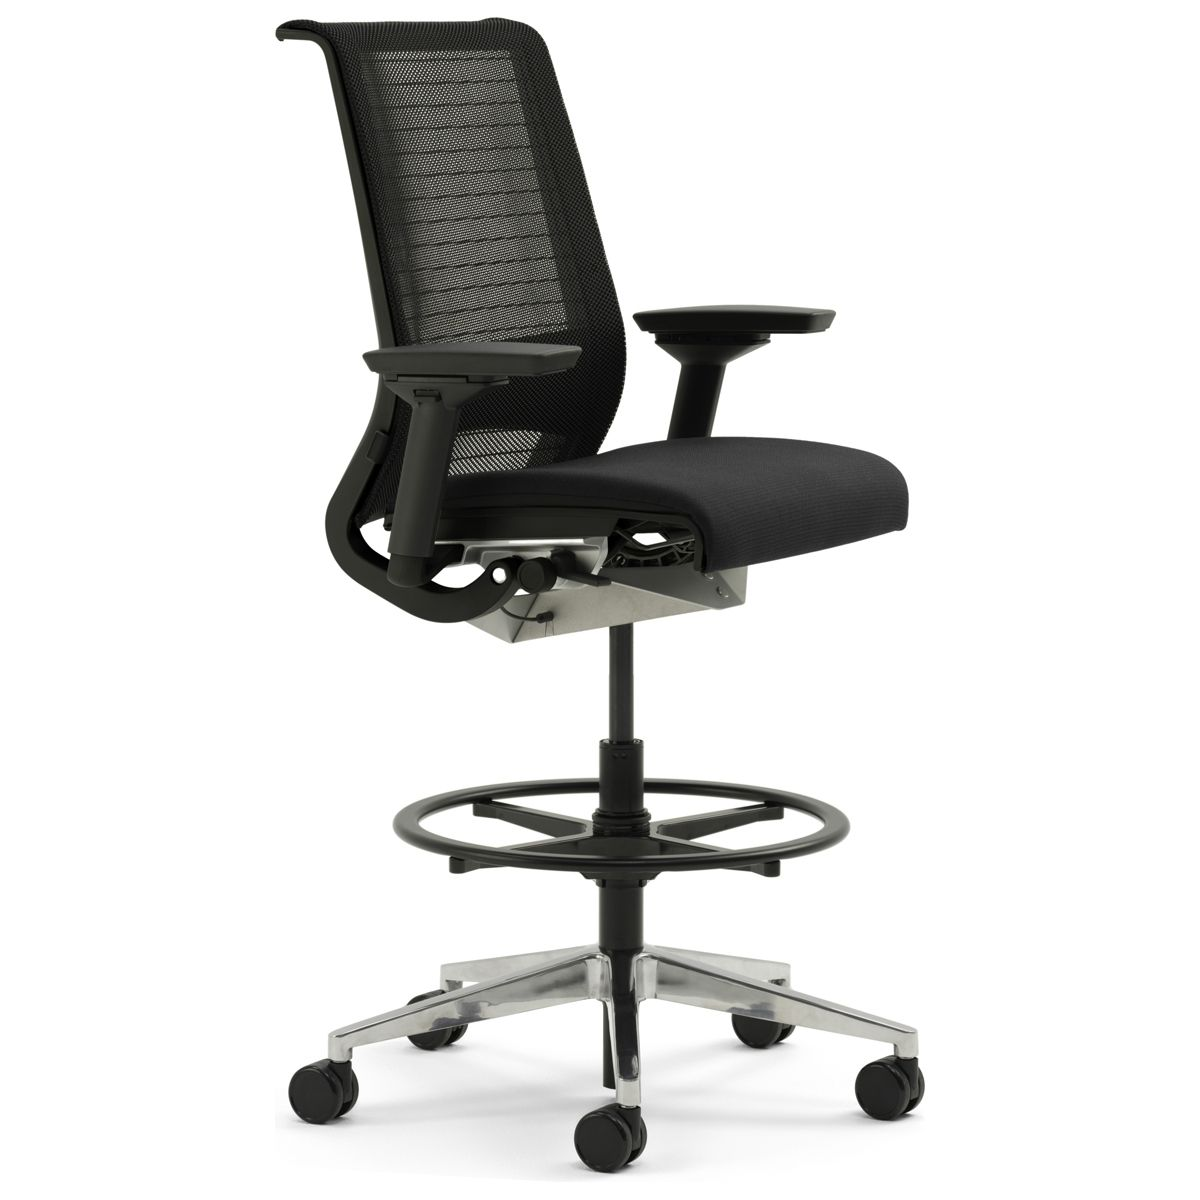 office drafting chair. The Steelcase Think Drafting Chair Features Same Intelligent Design As Award Winning Office U